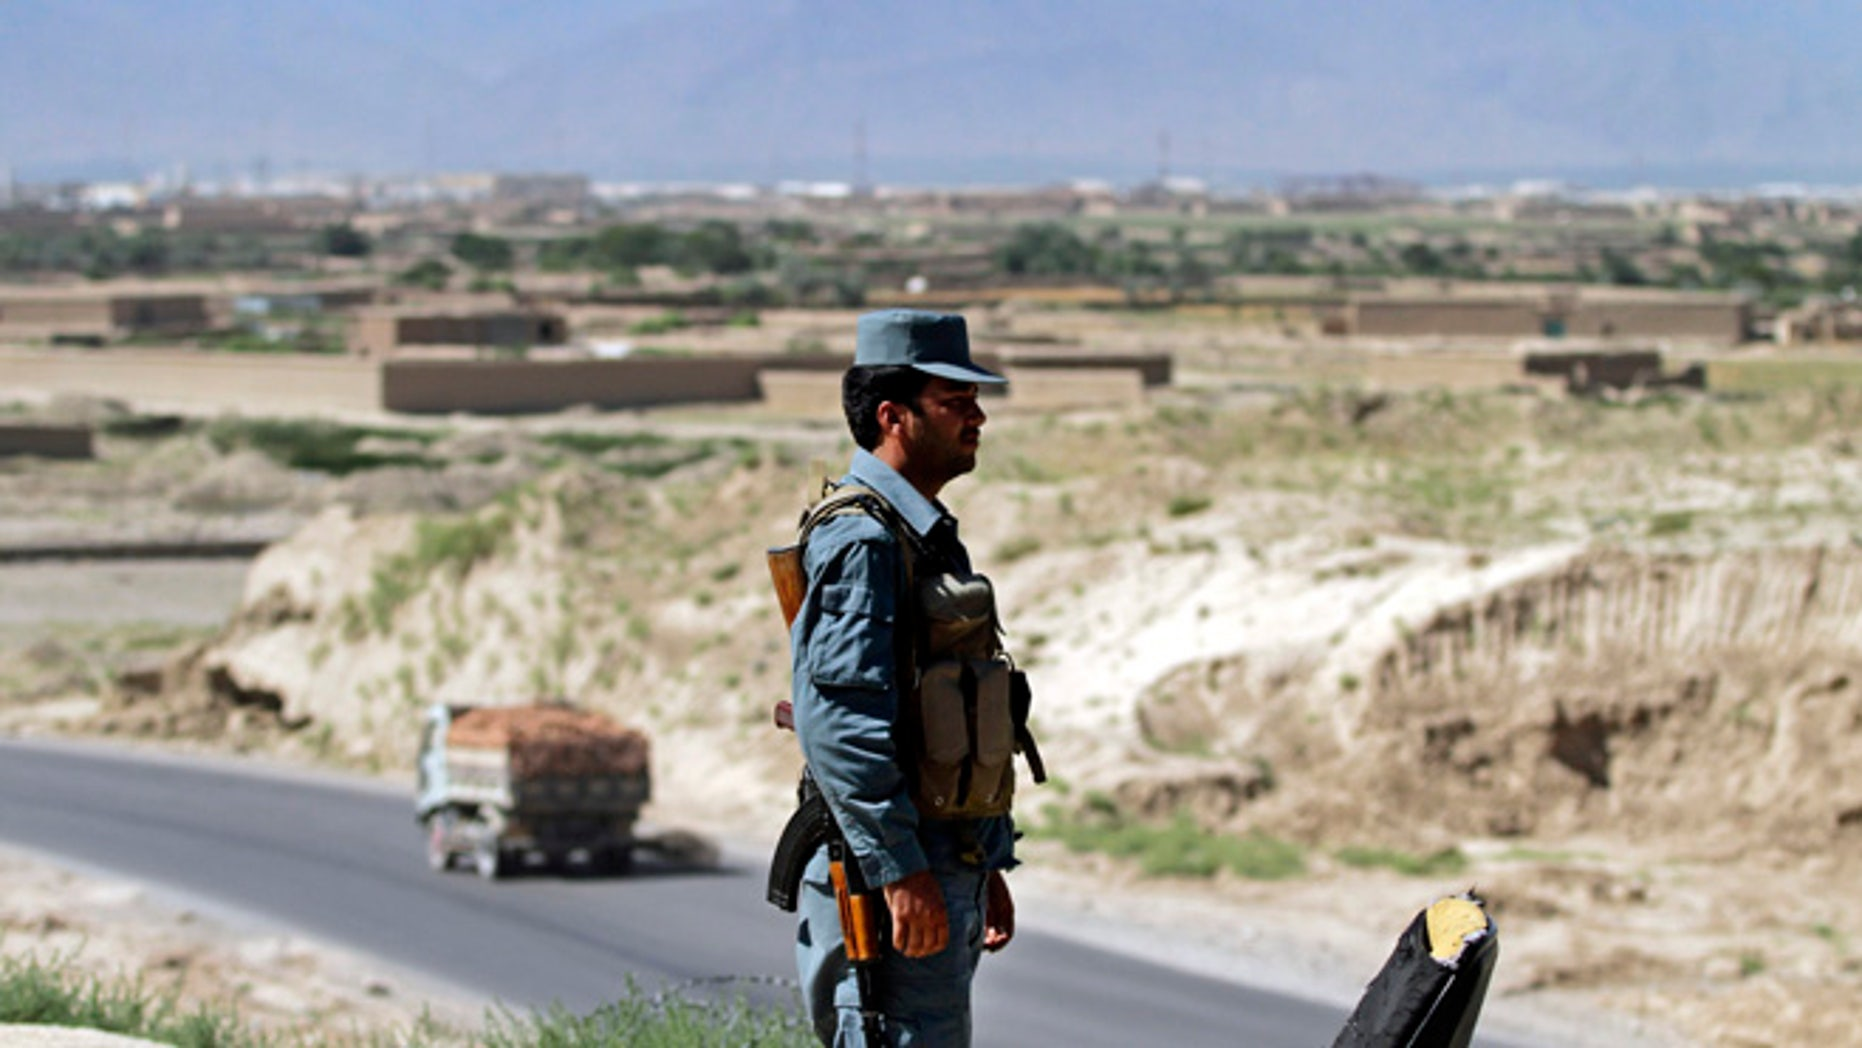 June, 19, 2013: An Afghan policeman stand guard outside Bagram military base, 31 miles north of Kabul, Afghanistan. The Taliban claimed responsibility Wednesday for an attack in Afghanistan that killed four American troops just hours after the insurgent group announced it would hold talks with the U.S. on finding a political solution to ending the nearly 12-year war in the country.